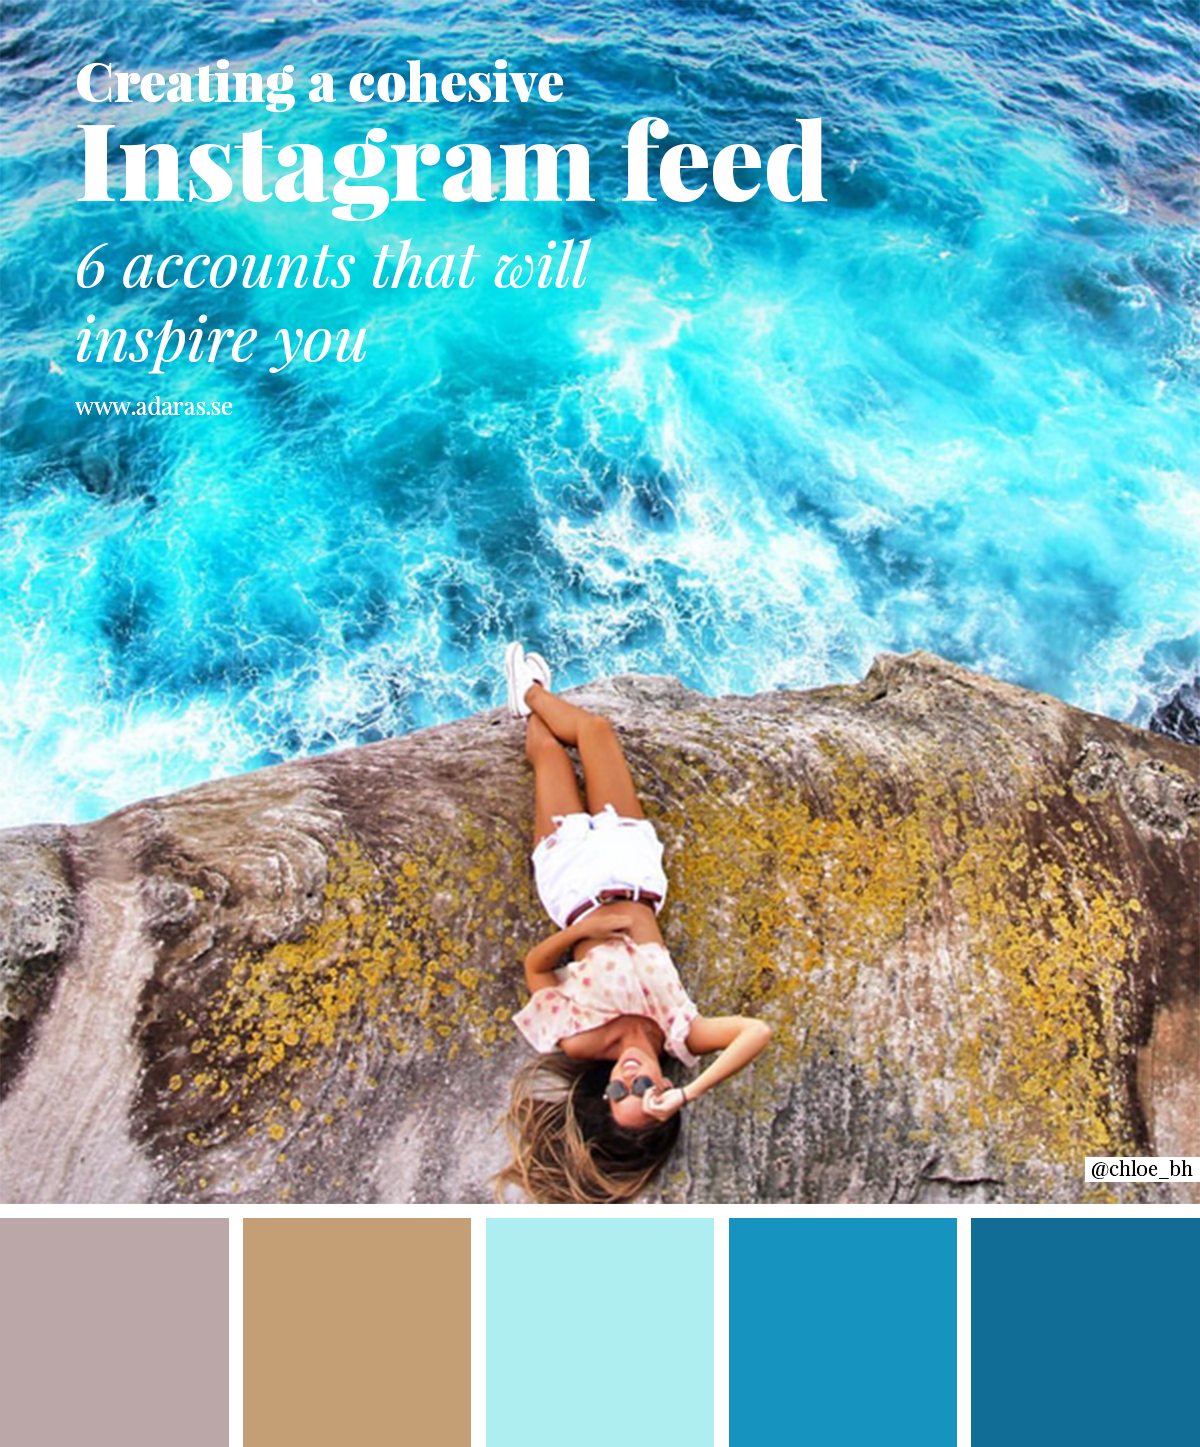 Creating a cohesive Instagram Feed - Accounts that will inspire you